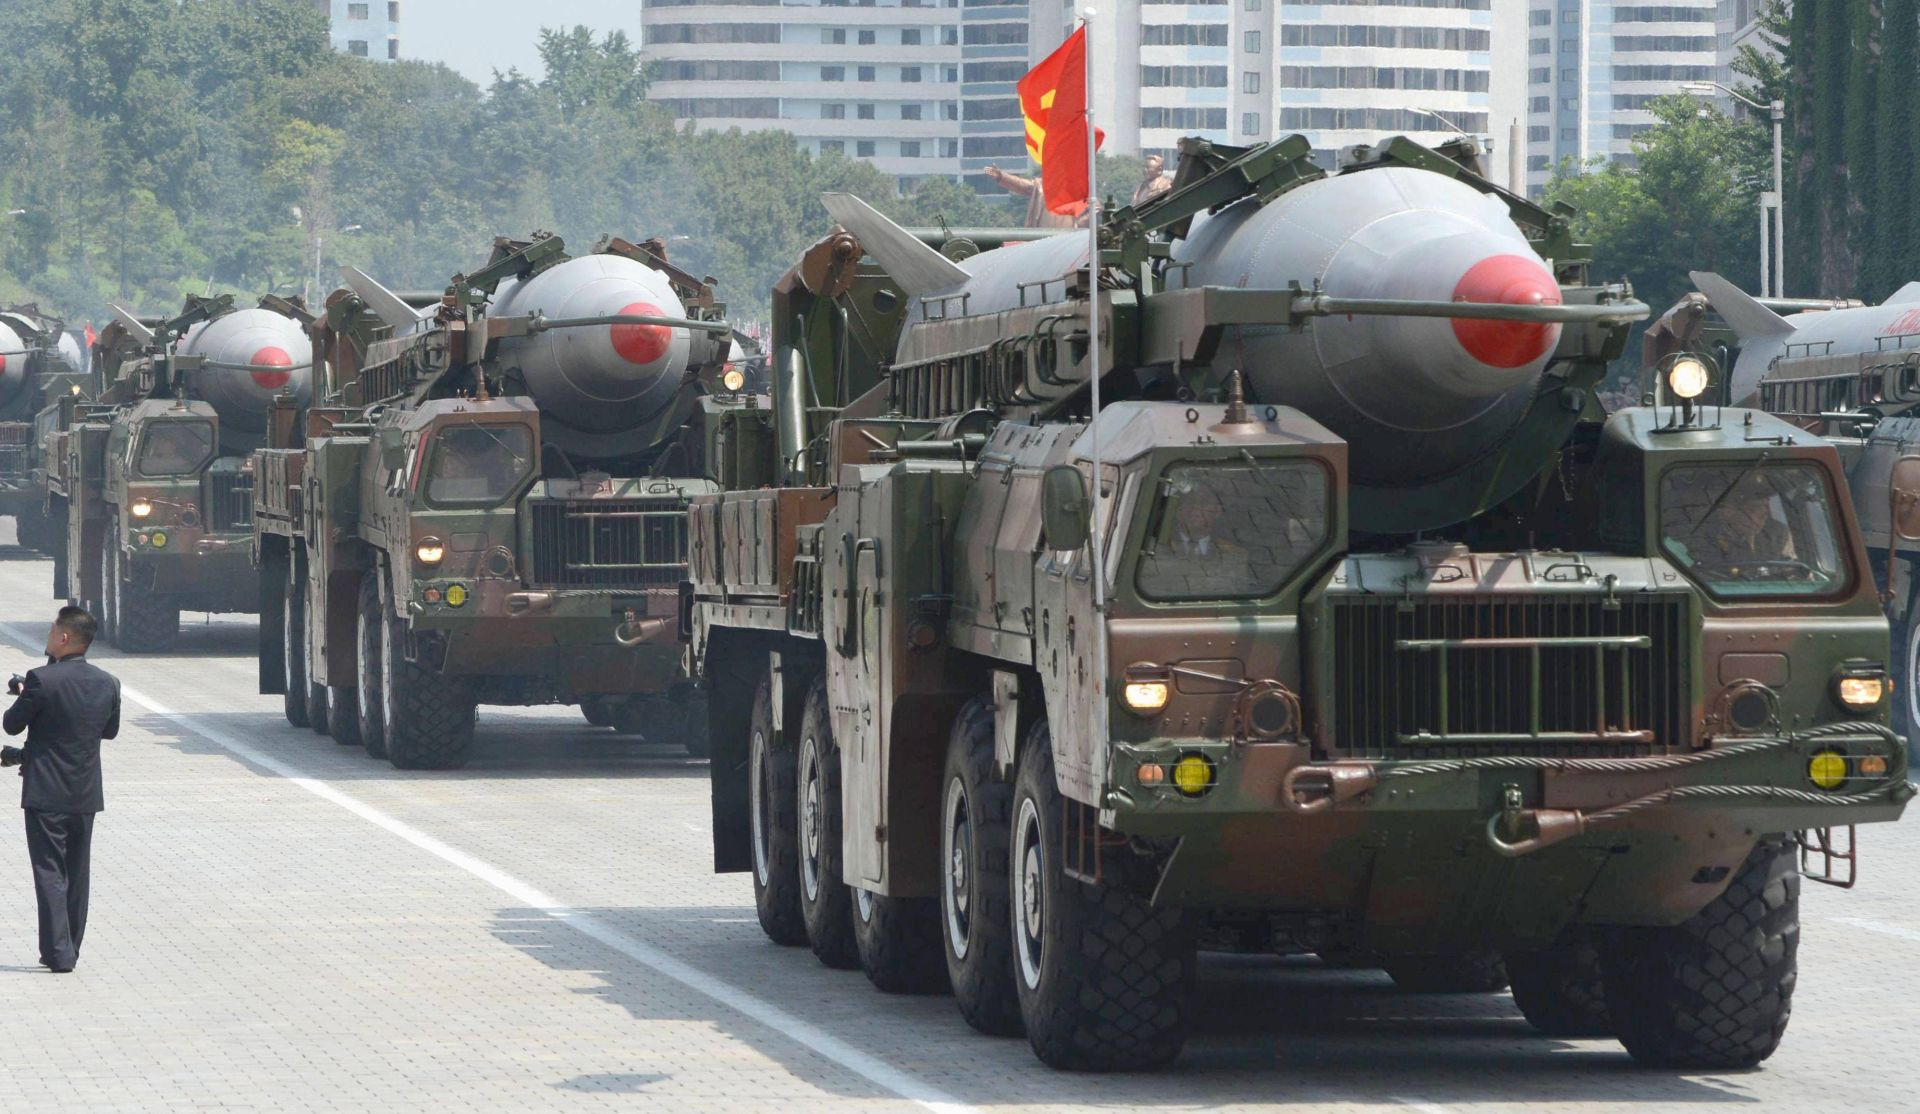 North Korea's Nodong missiles